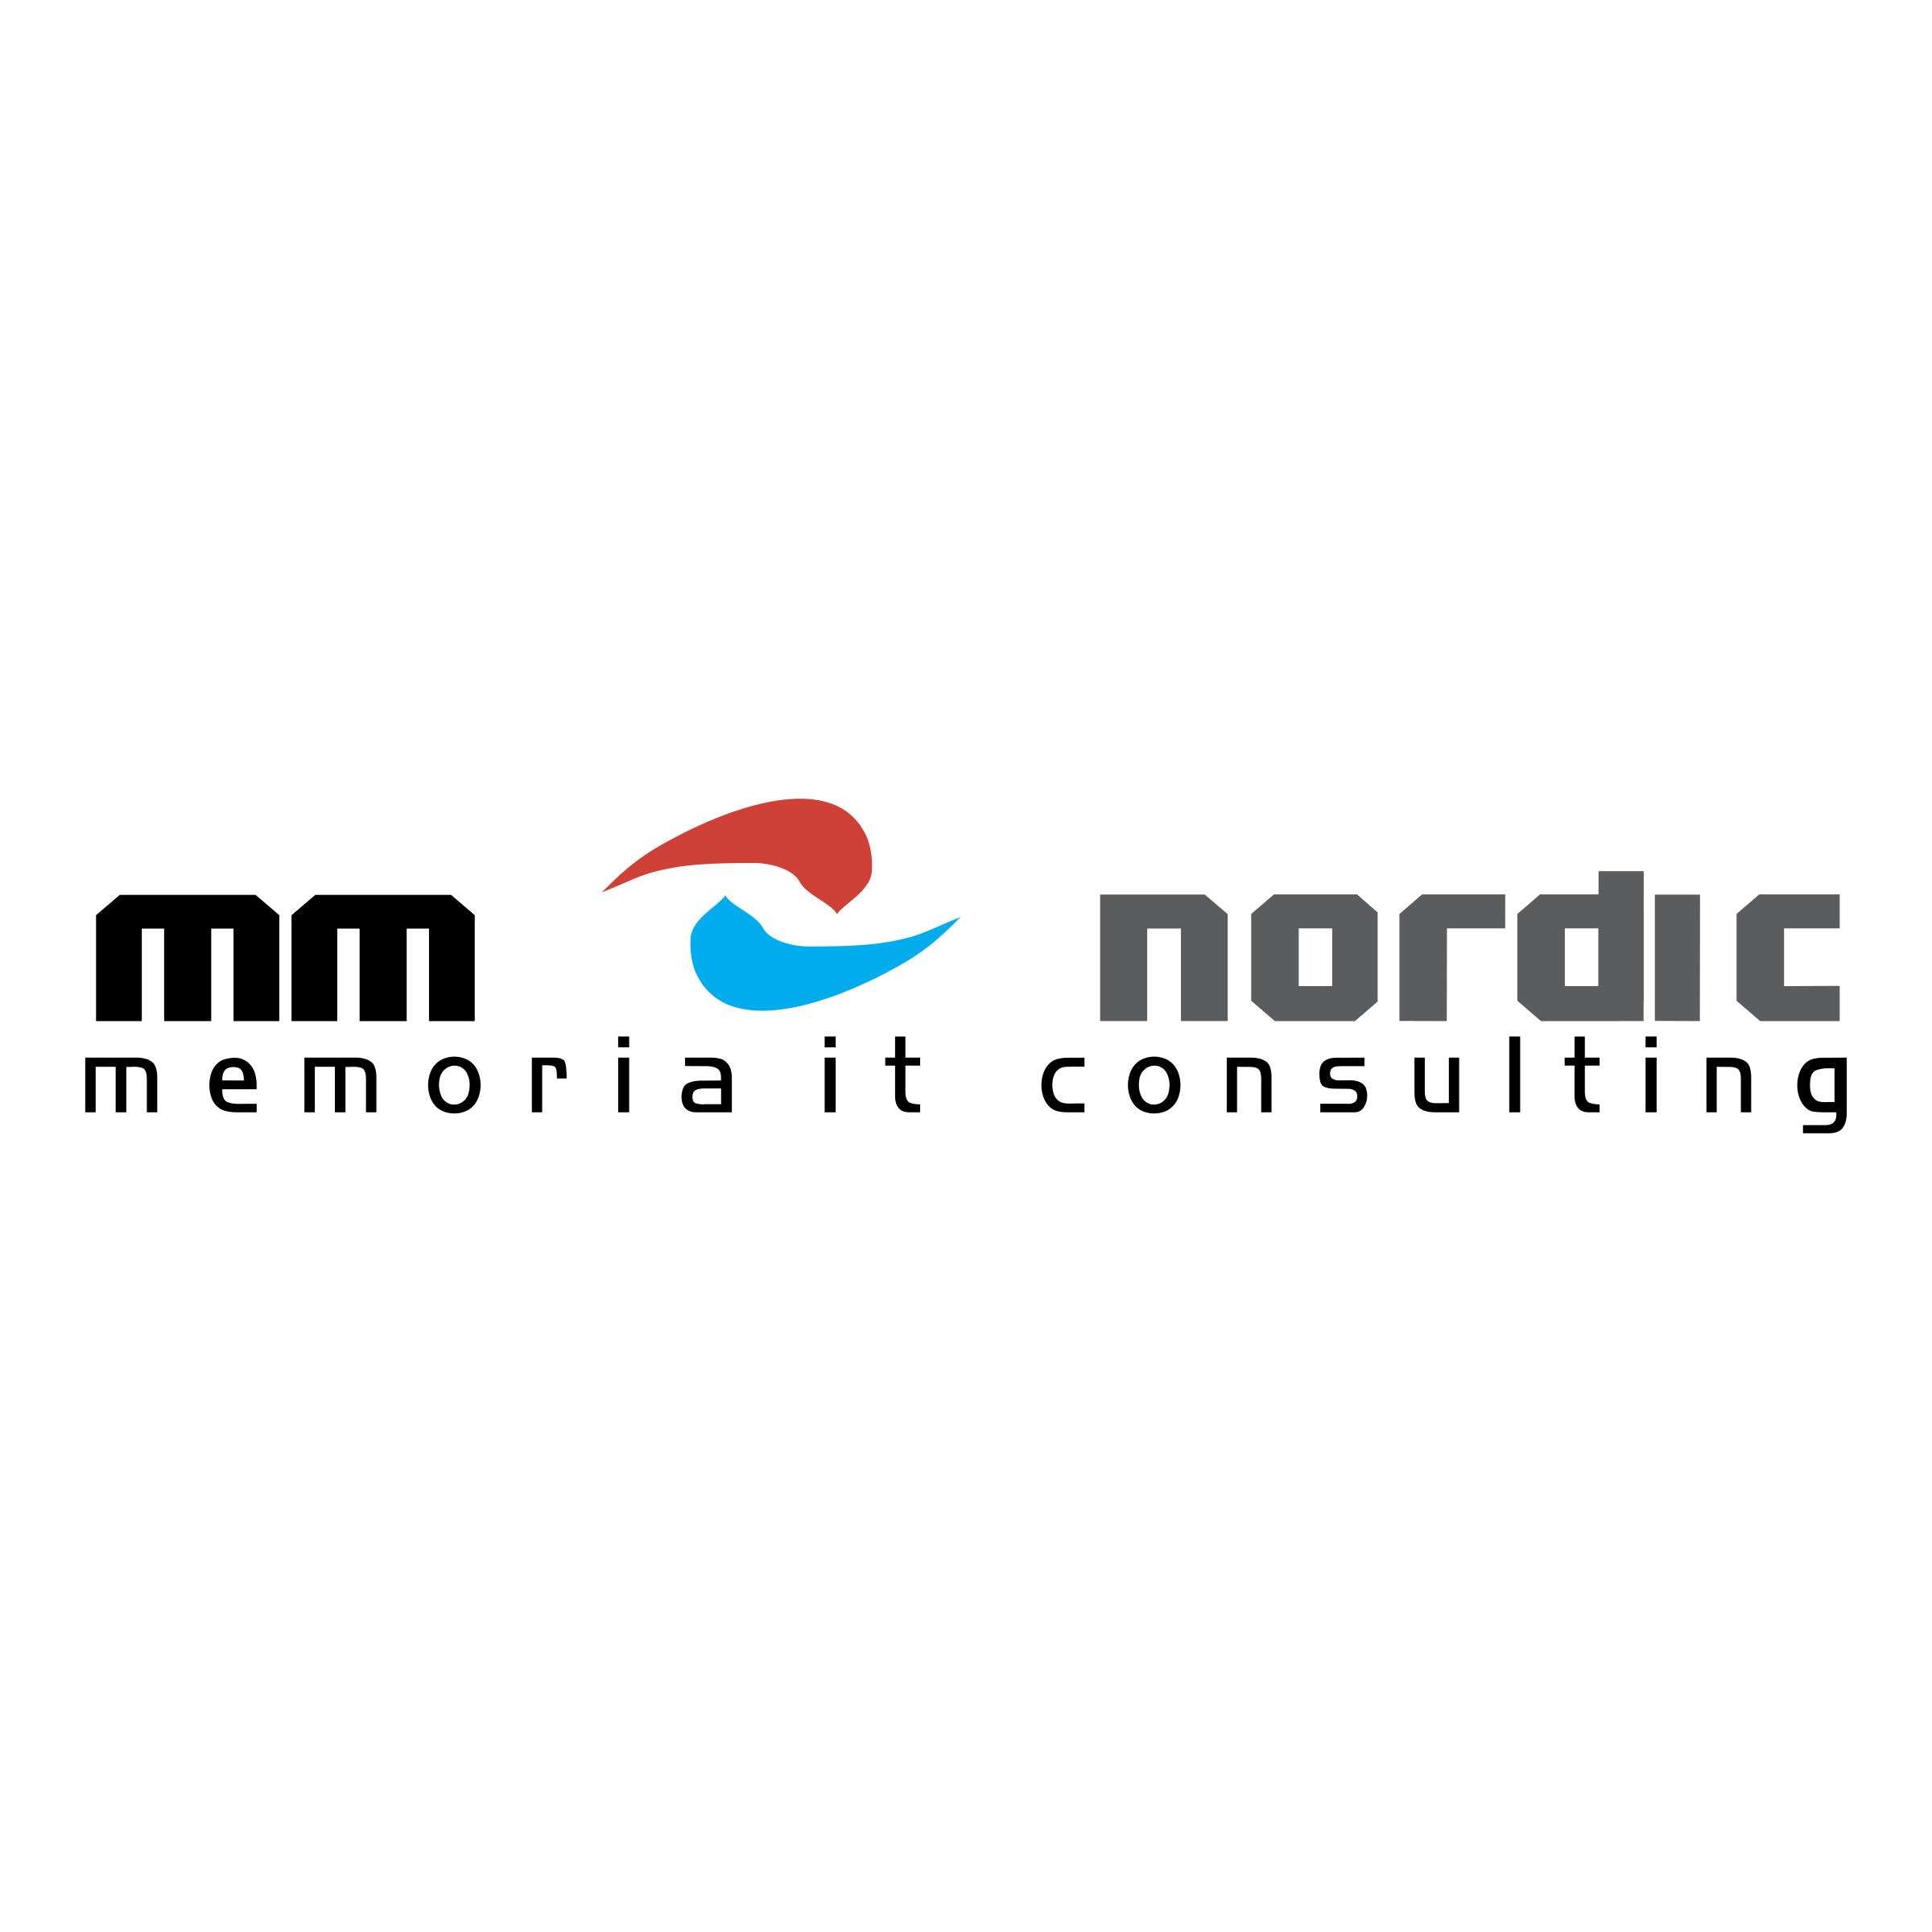 clipart black and white library Memoria nordic it logo. Vector consulting